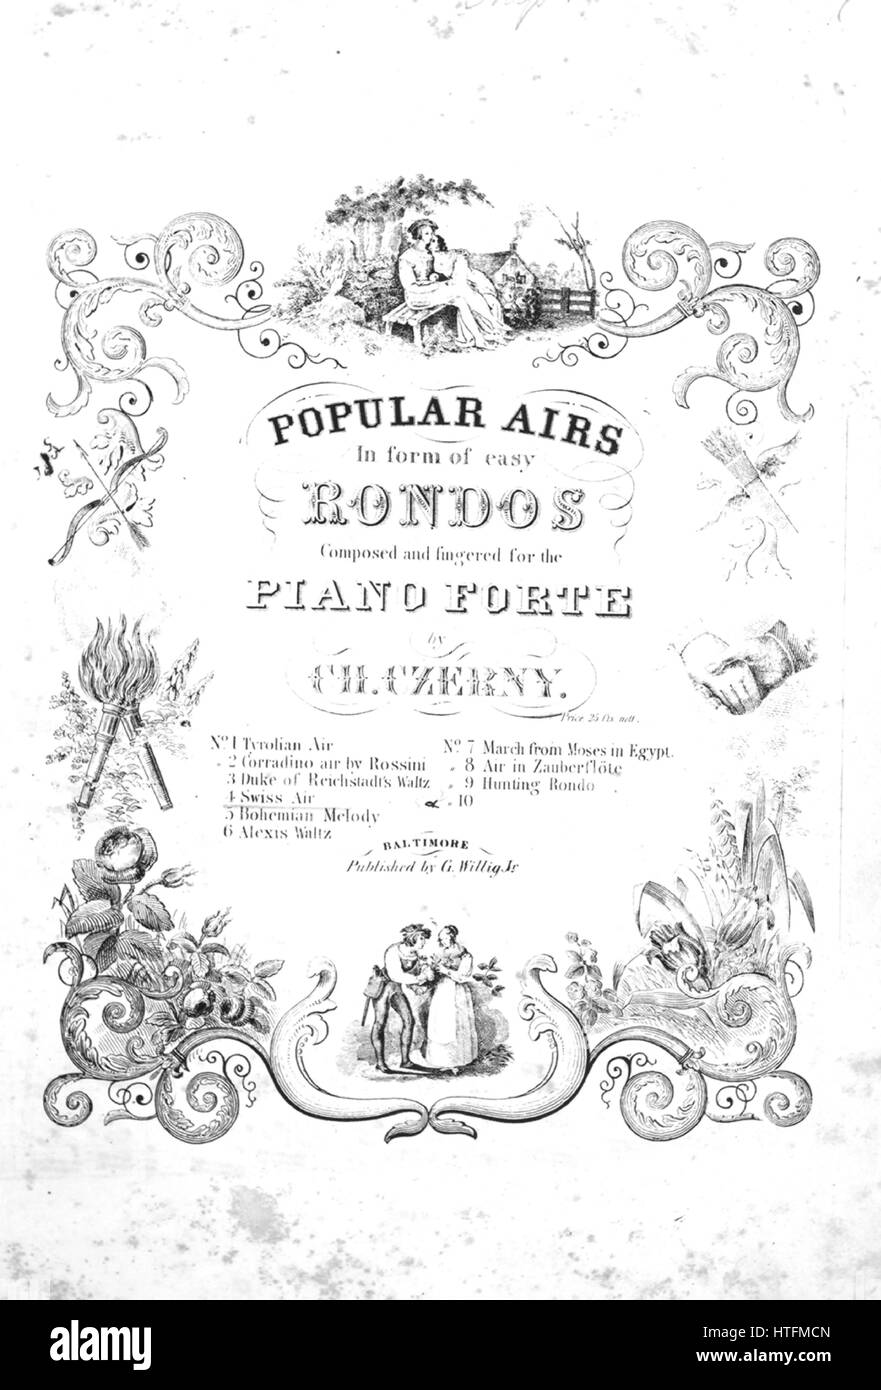 Sheet music cover image of the song 'Swiss Air No 4 Series title  Popular Airs in [the] form of easy Rondos', - Stock Image